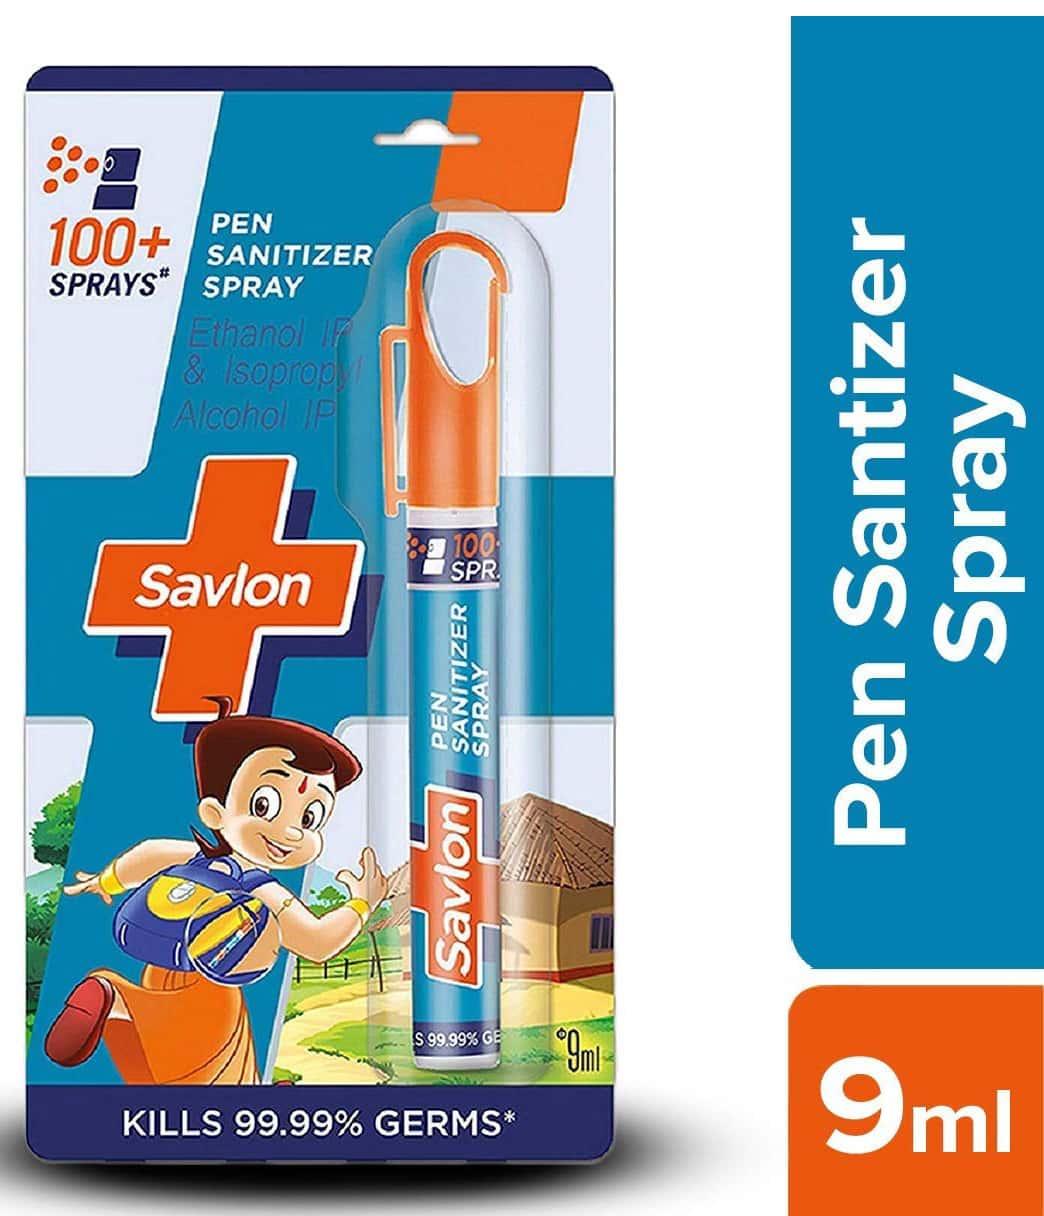 Savlon Pen Sanitizer Bottle Of 9 Ml